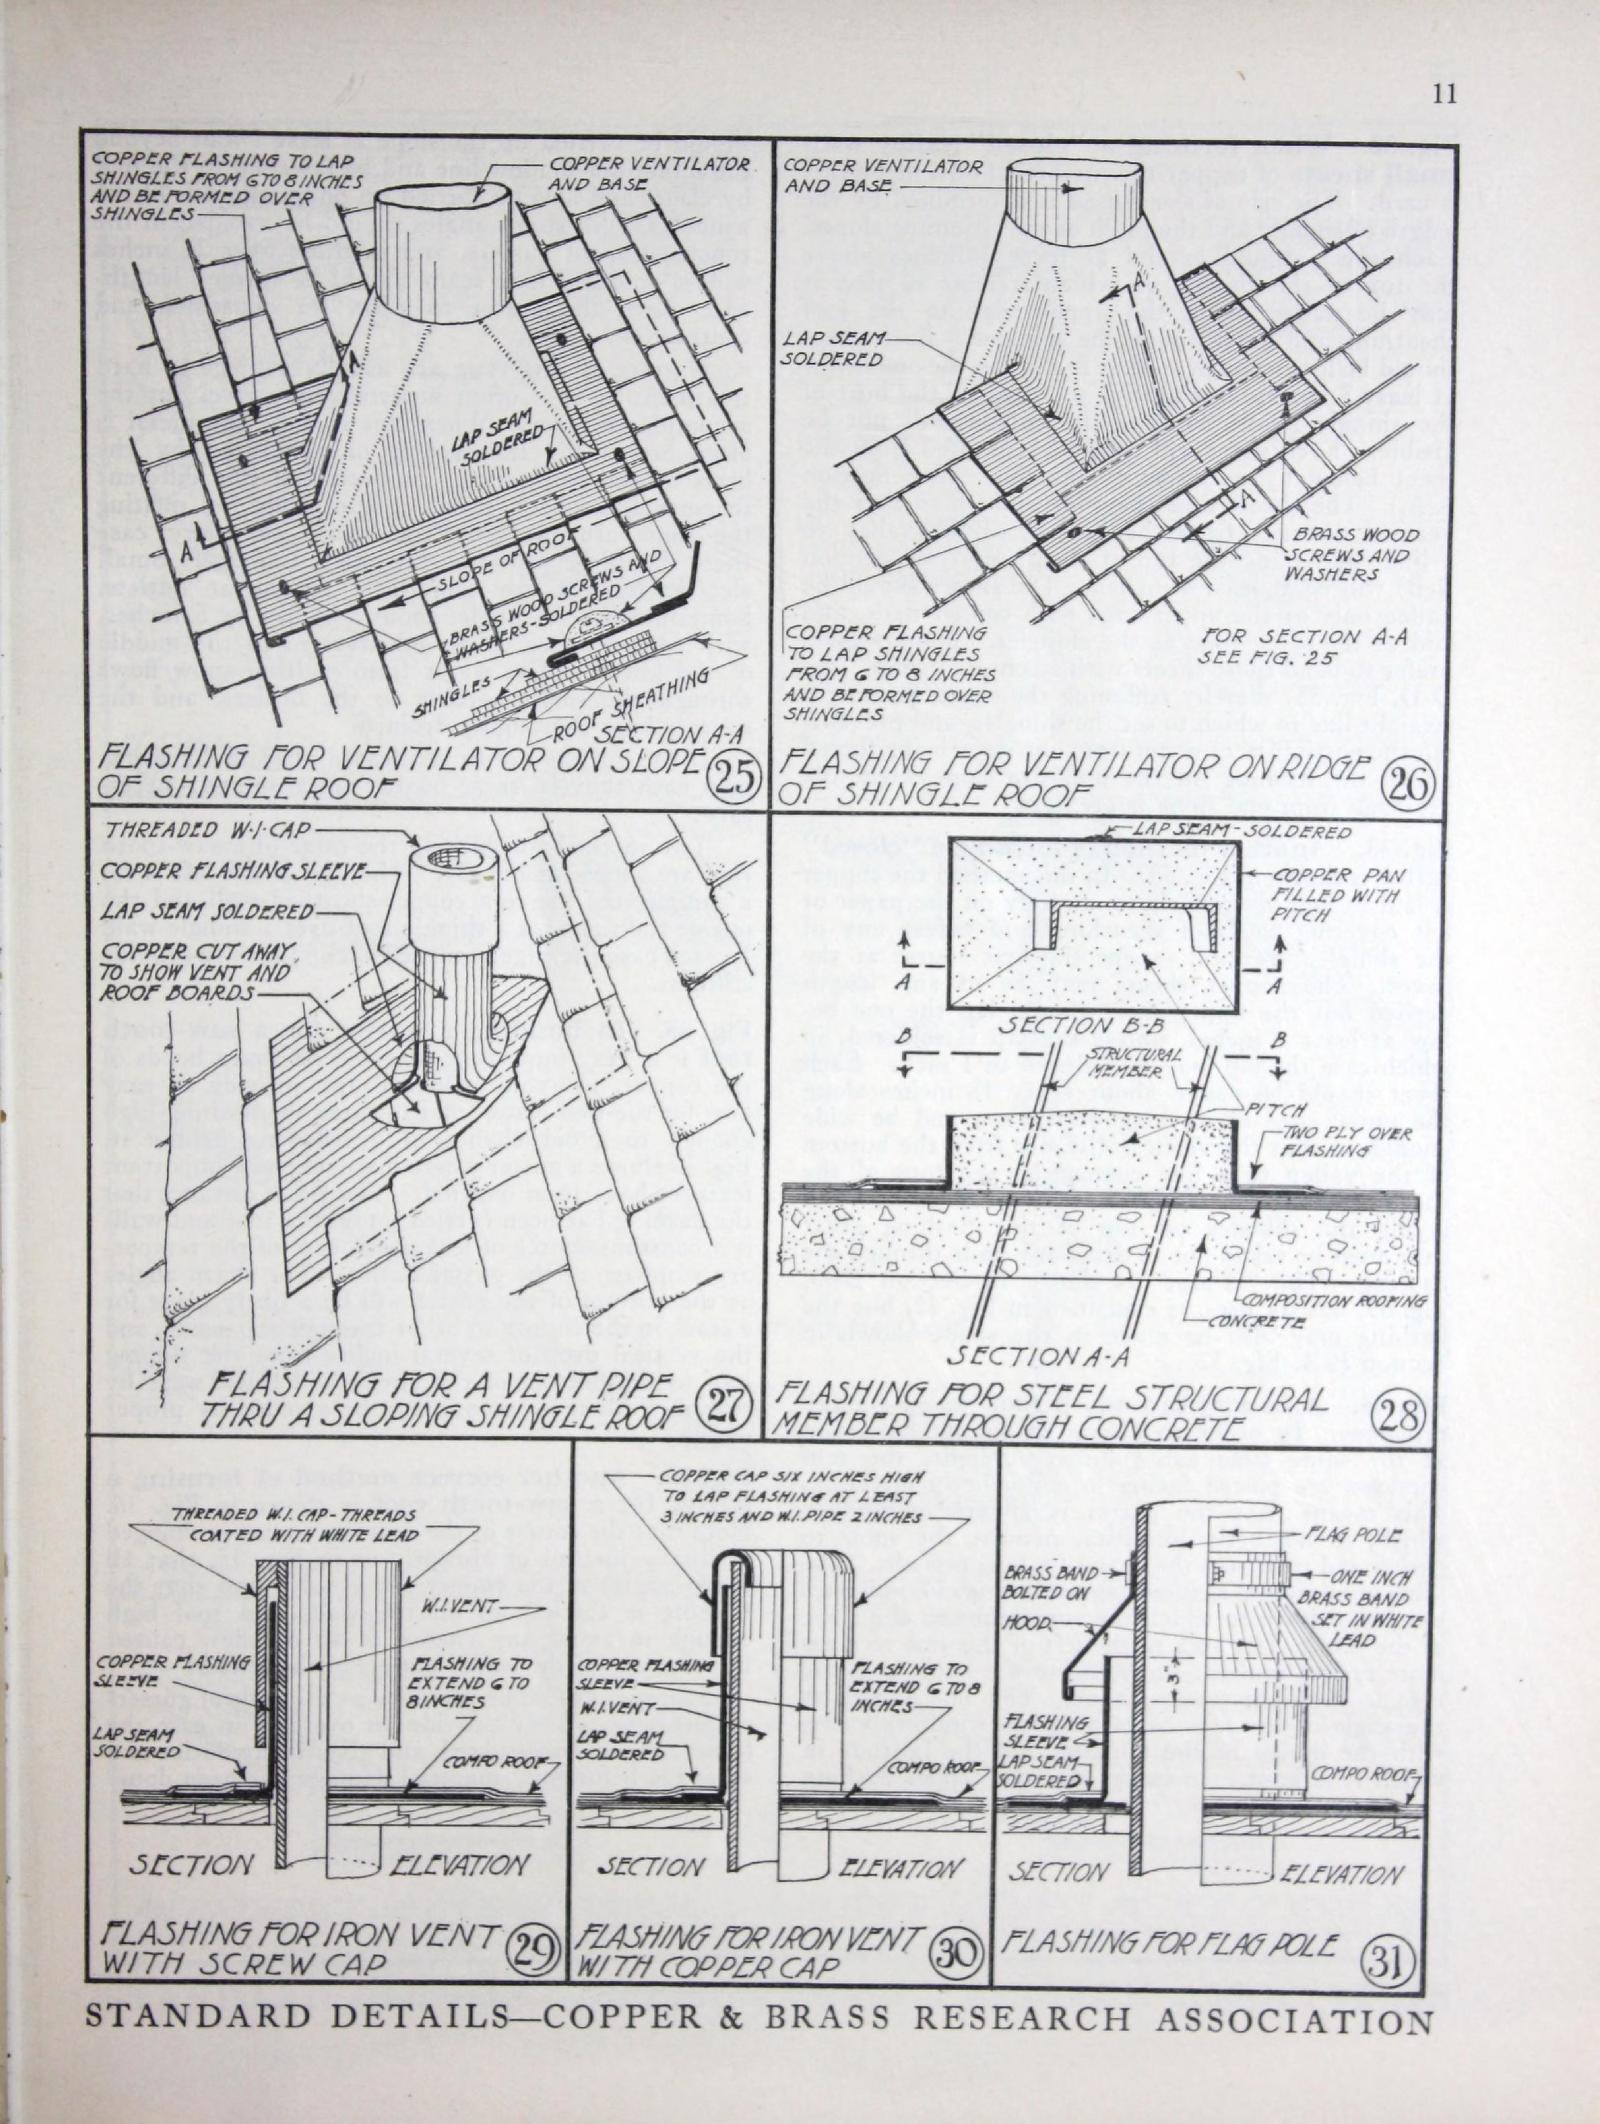 Copper Flashings - Copper And Brass Research Association - Page 11.jpg